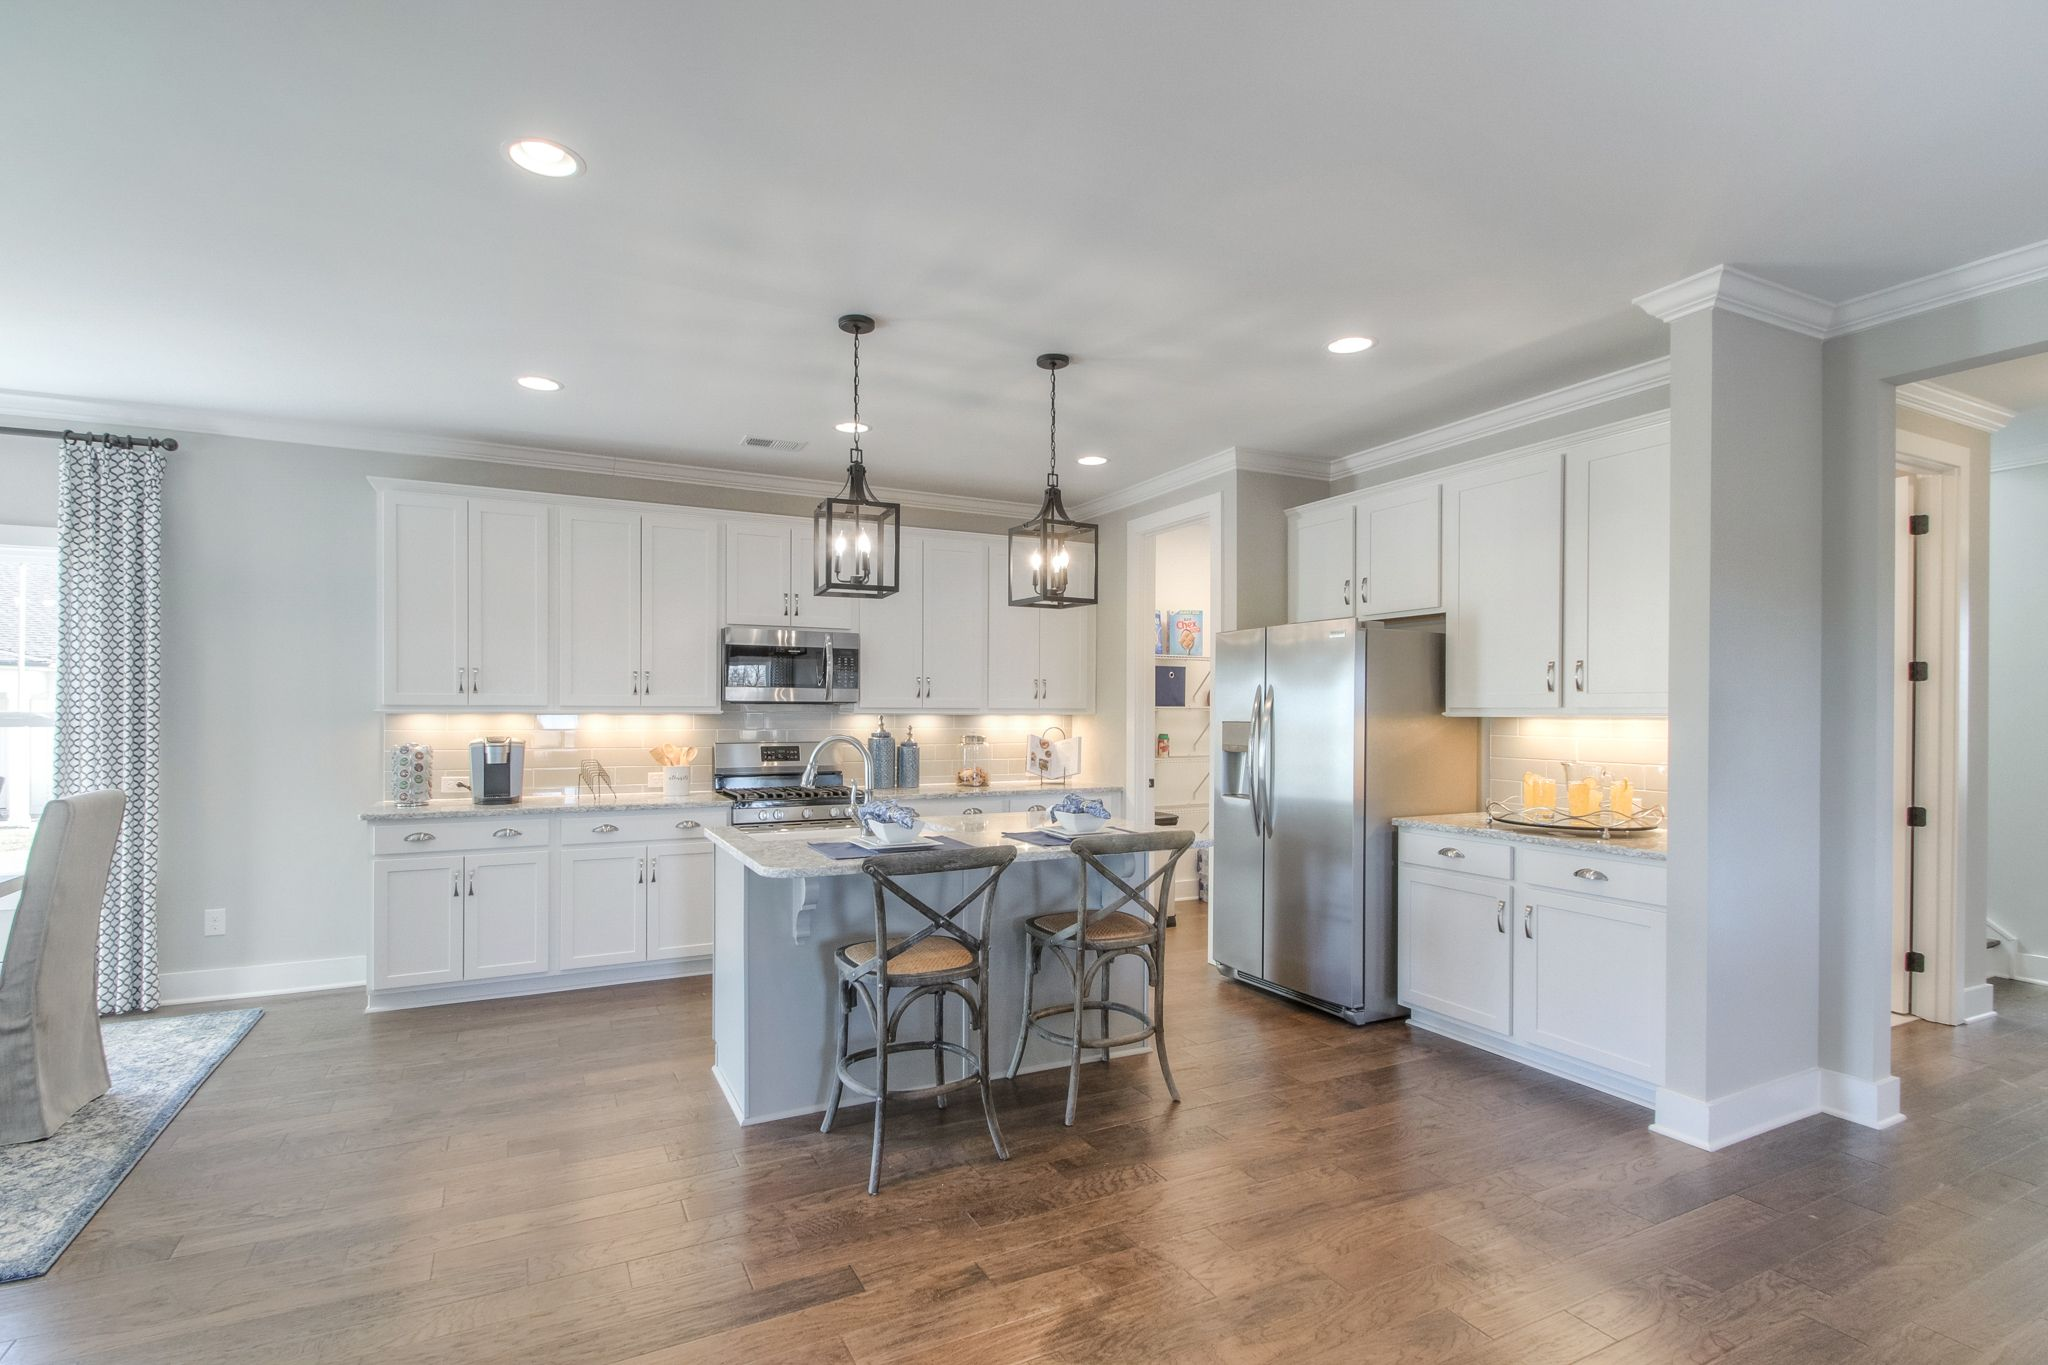 Kitchen featured in The Kingsmont By Goodall Homes in Knoxville, TN